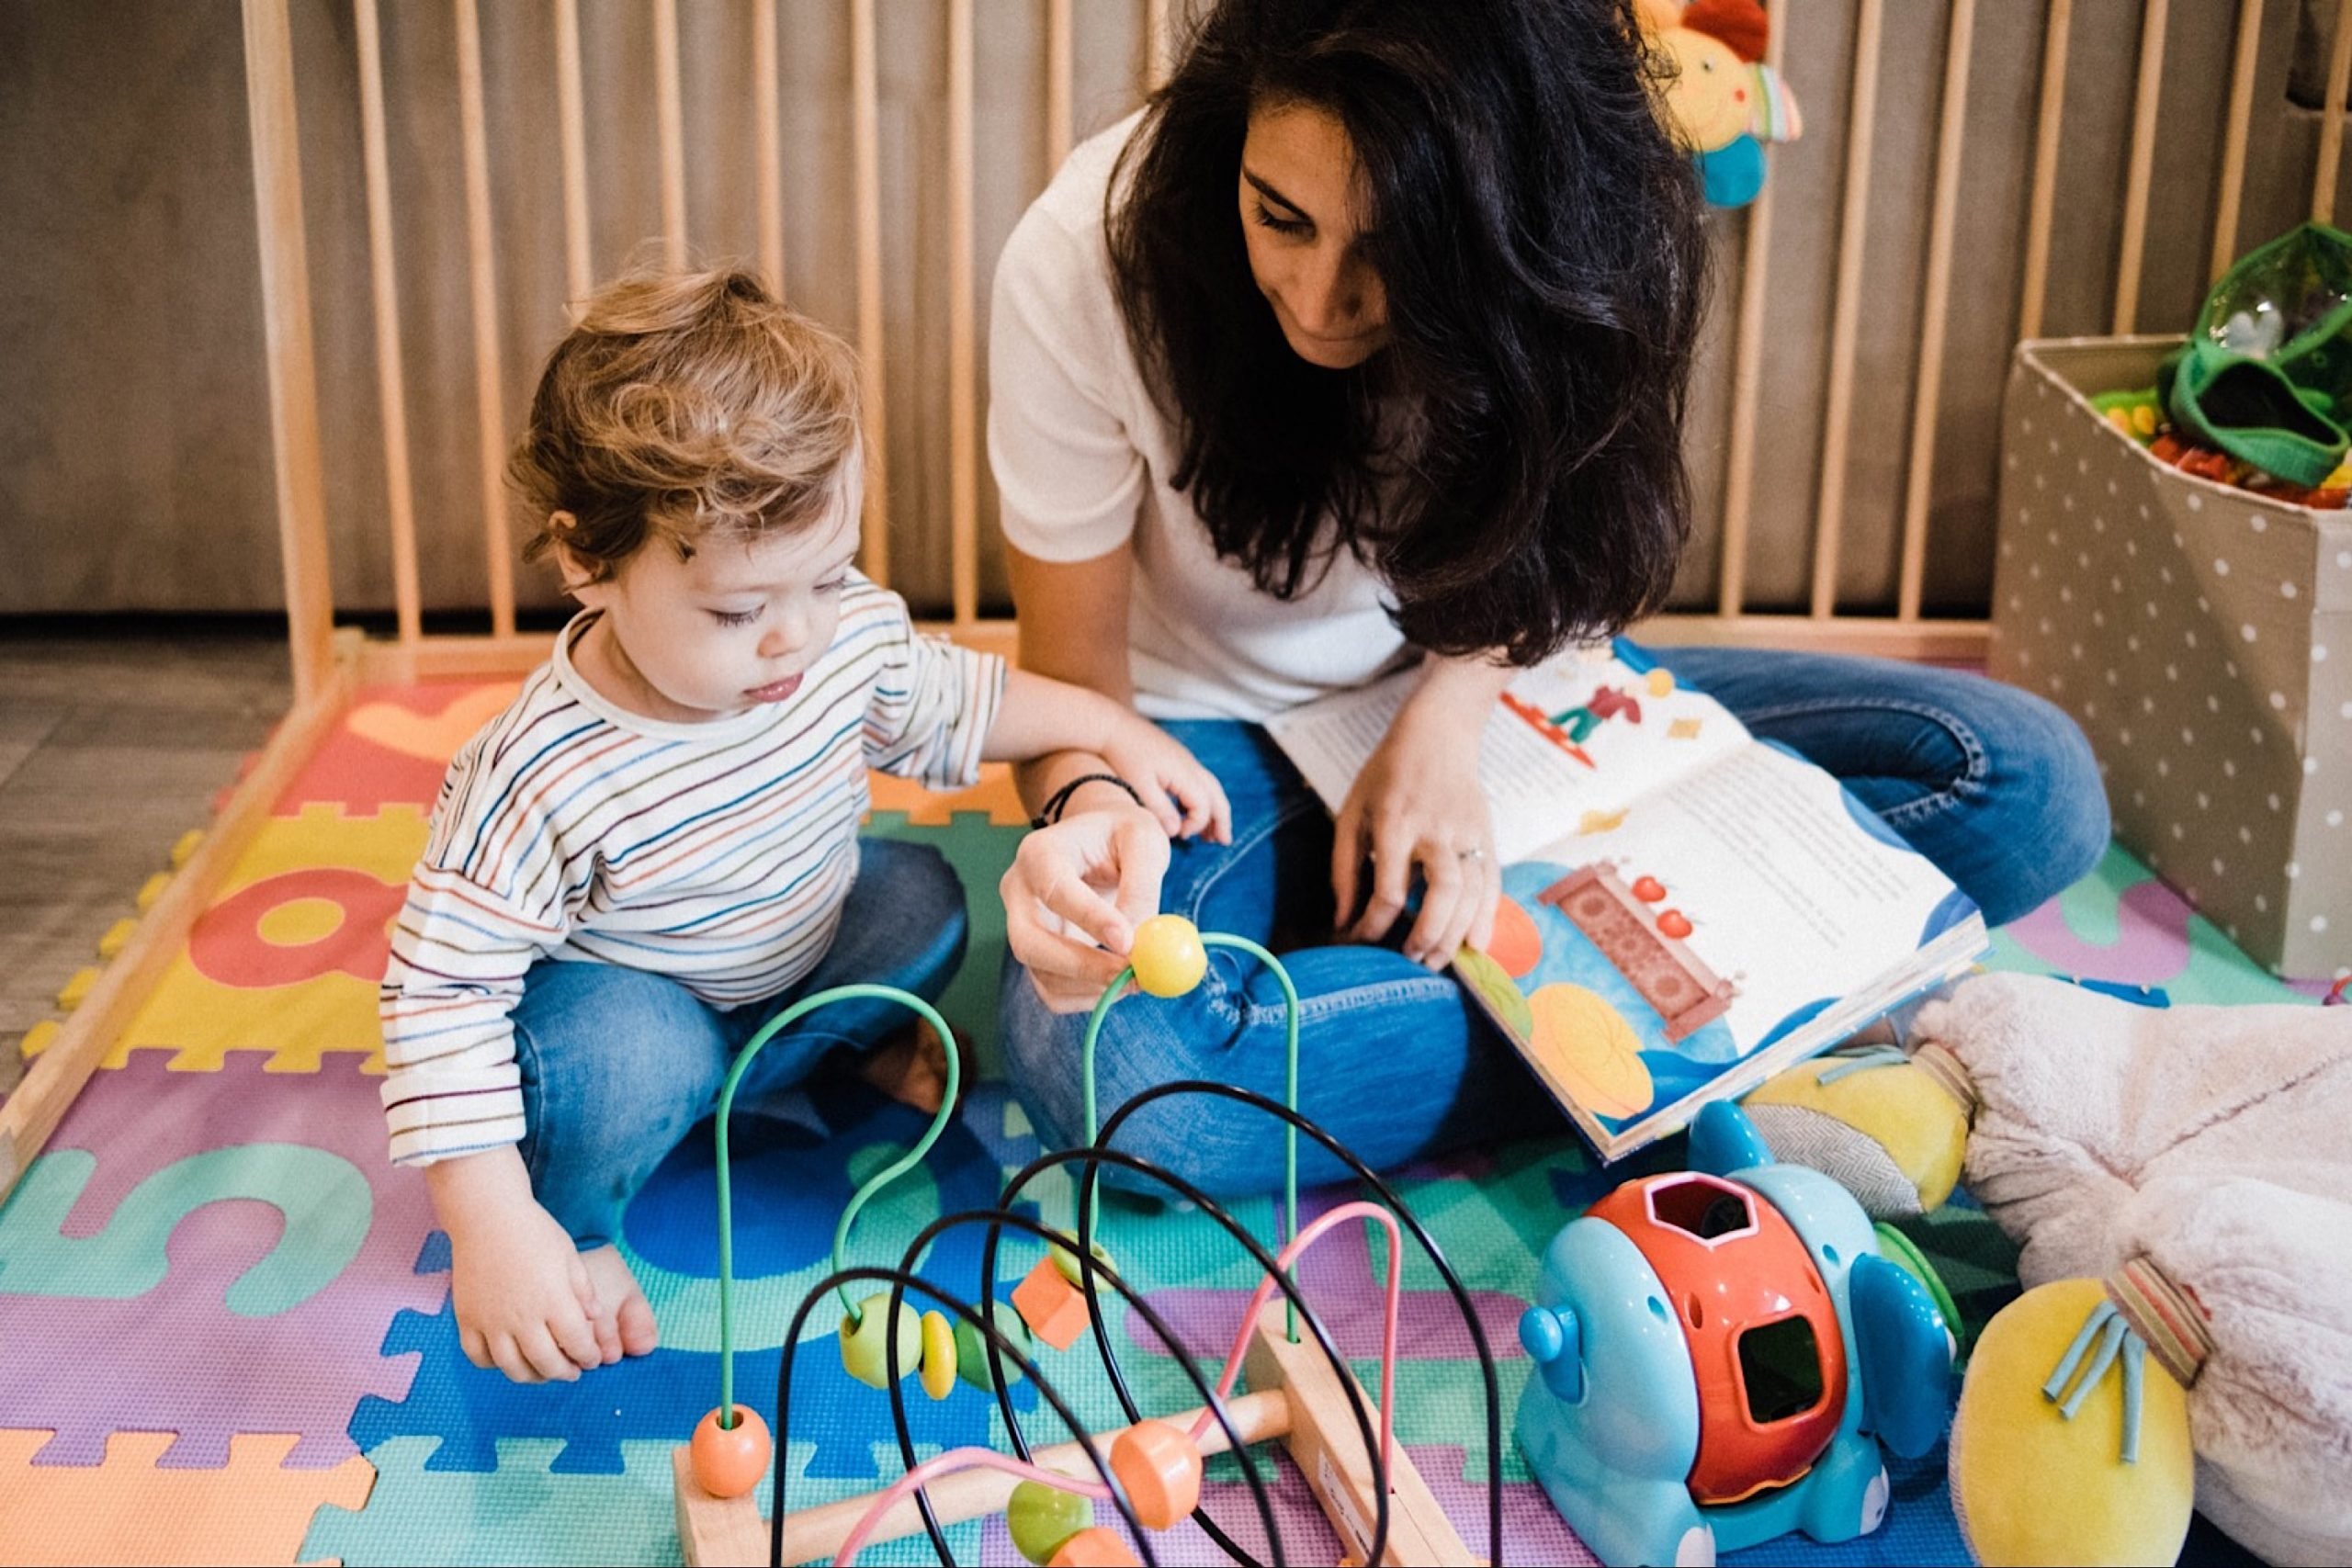 In-Home Family Photography of a Mum playing on a colourful abacus toy with her toddler.